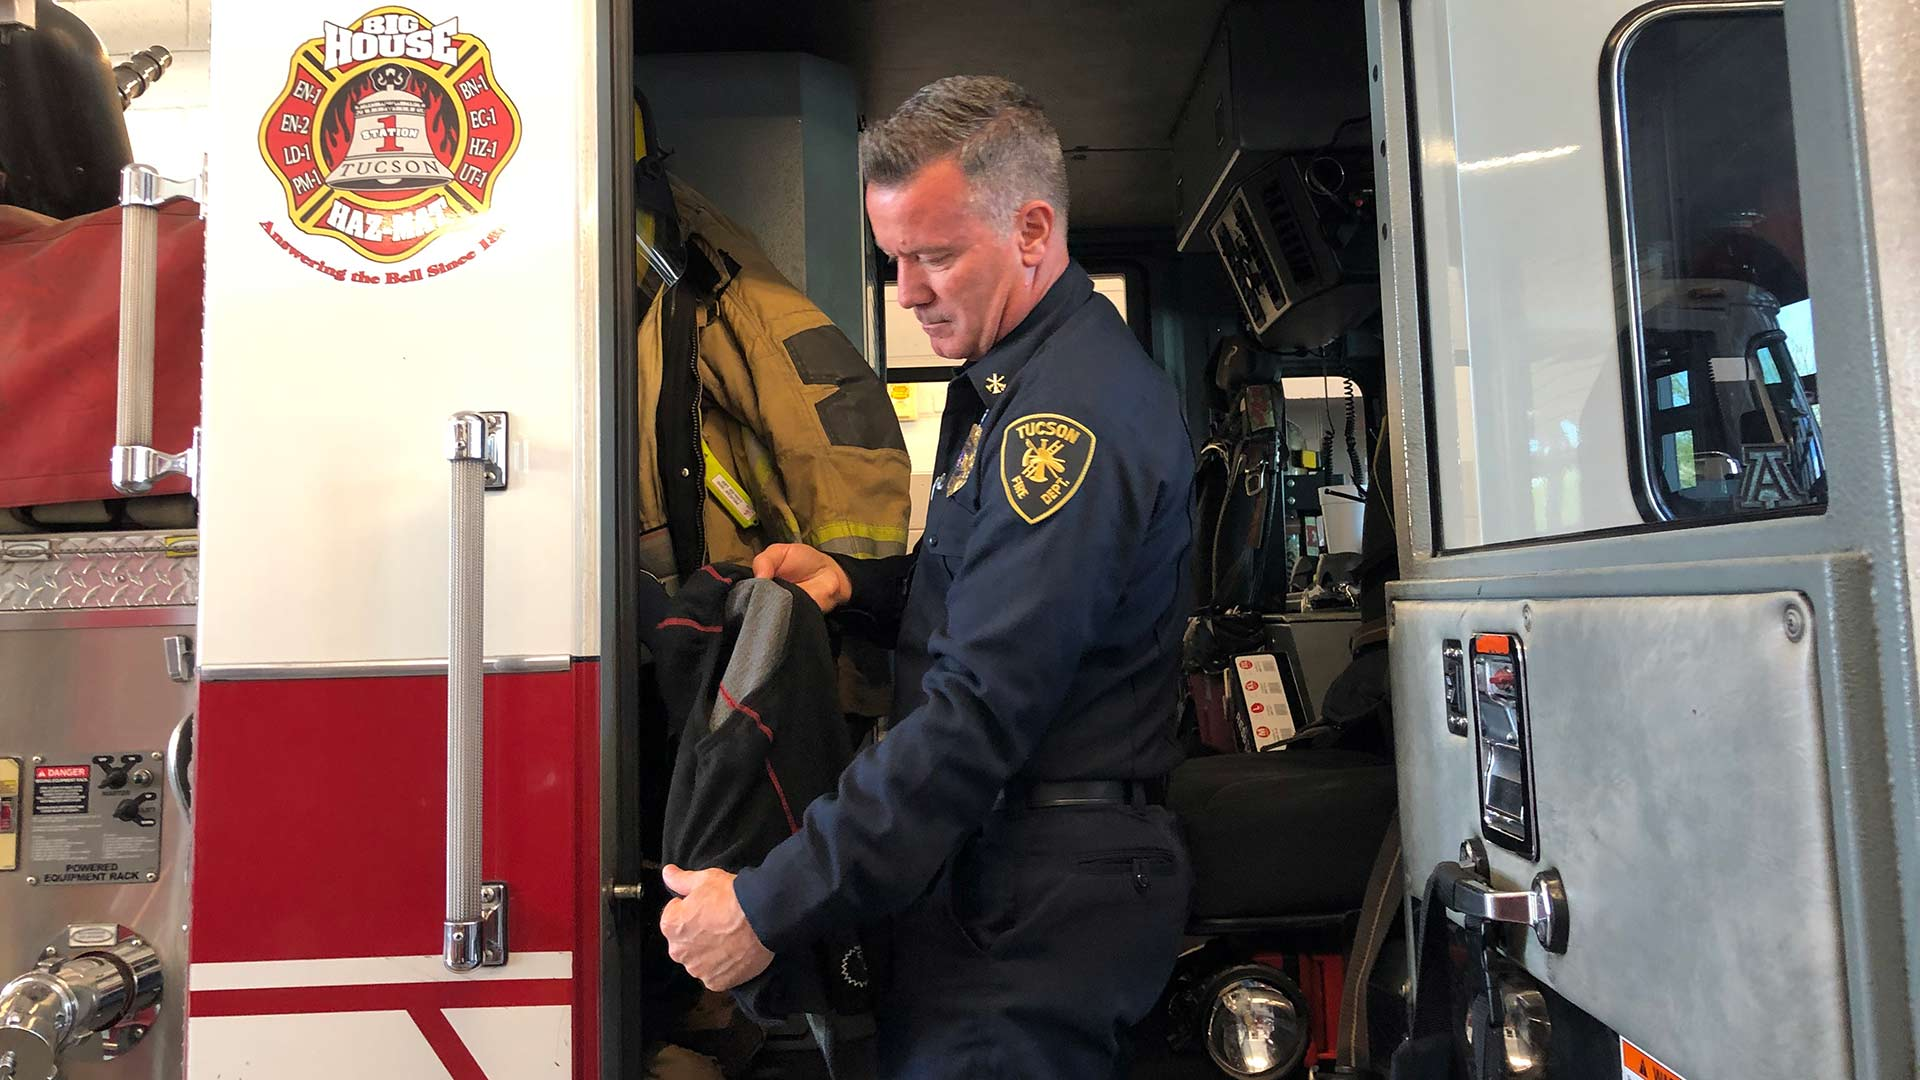 Health and Wellness Captain Darin Wallentine discusses improvements made to new firefighter hoods. He says a partnership has allowed the Tucson Fire Department to make improvements to its firefighting gear.